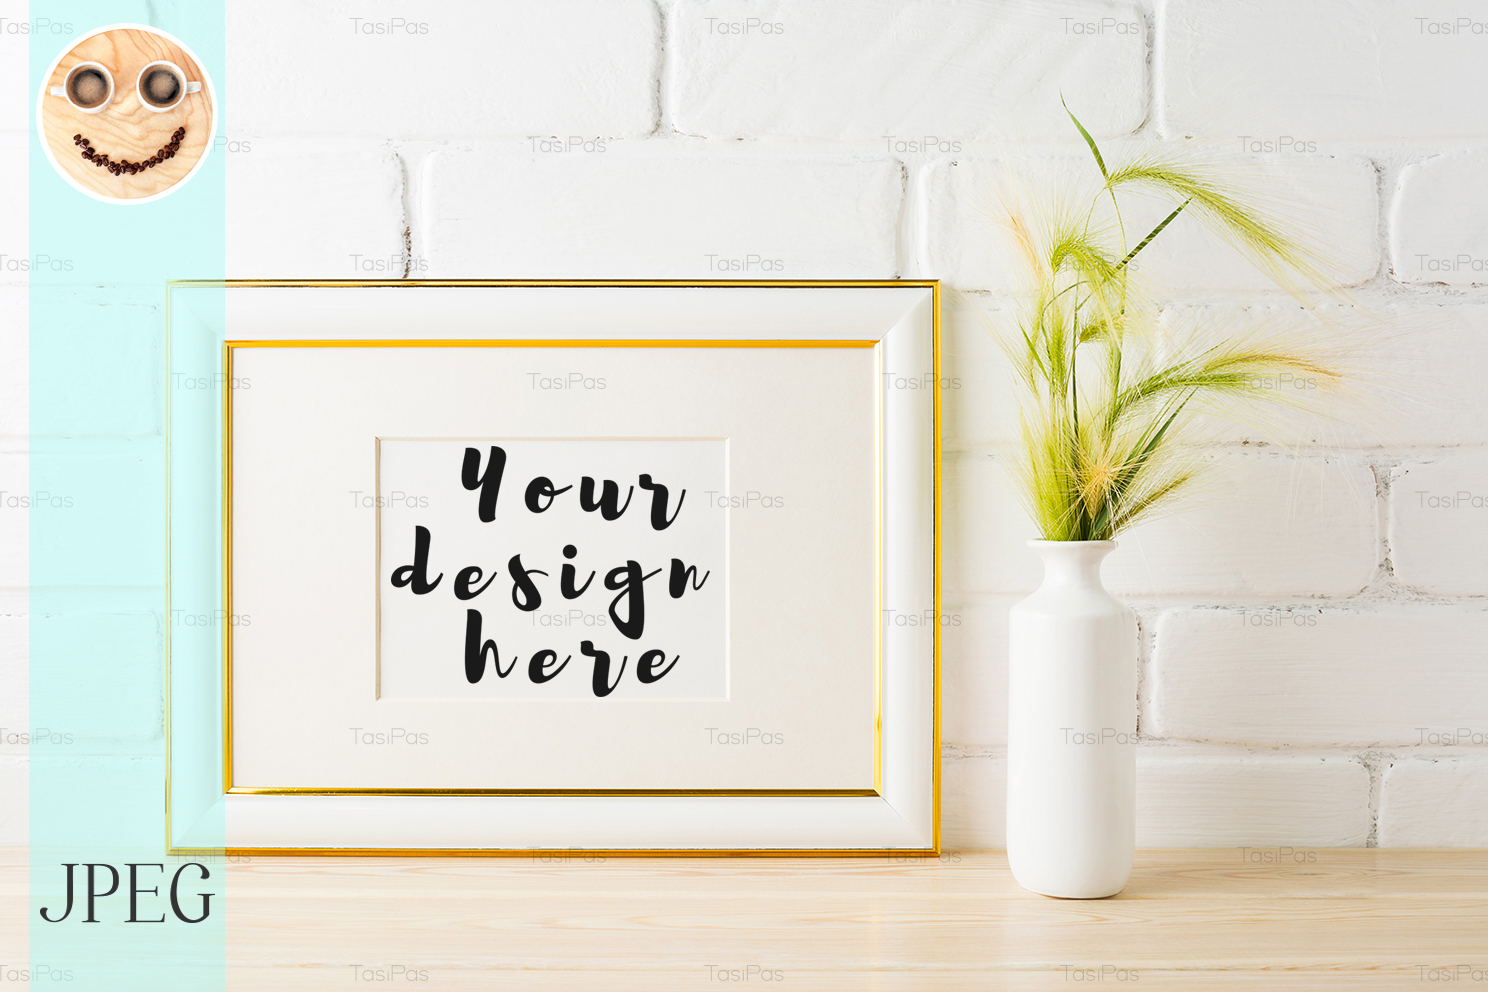 Download Free Gold Decorated Landscape Frame Mockup Graphic By Tasipas for Cricut Explore, Silhouette and other cutting machines.